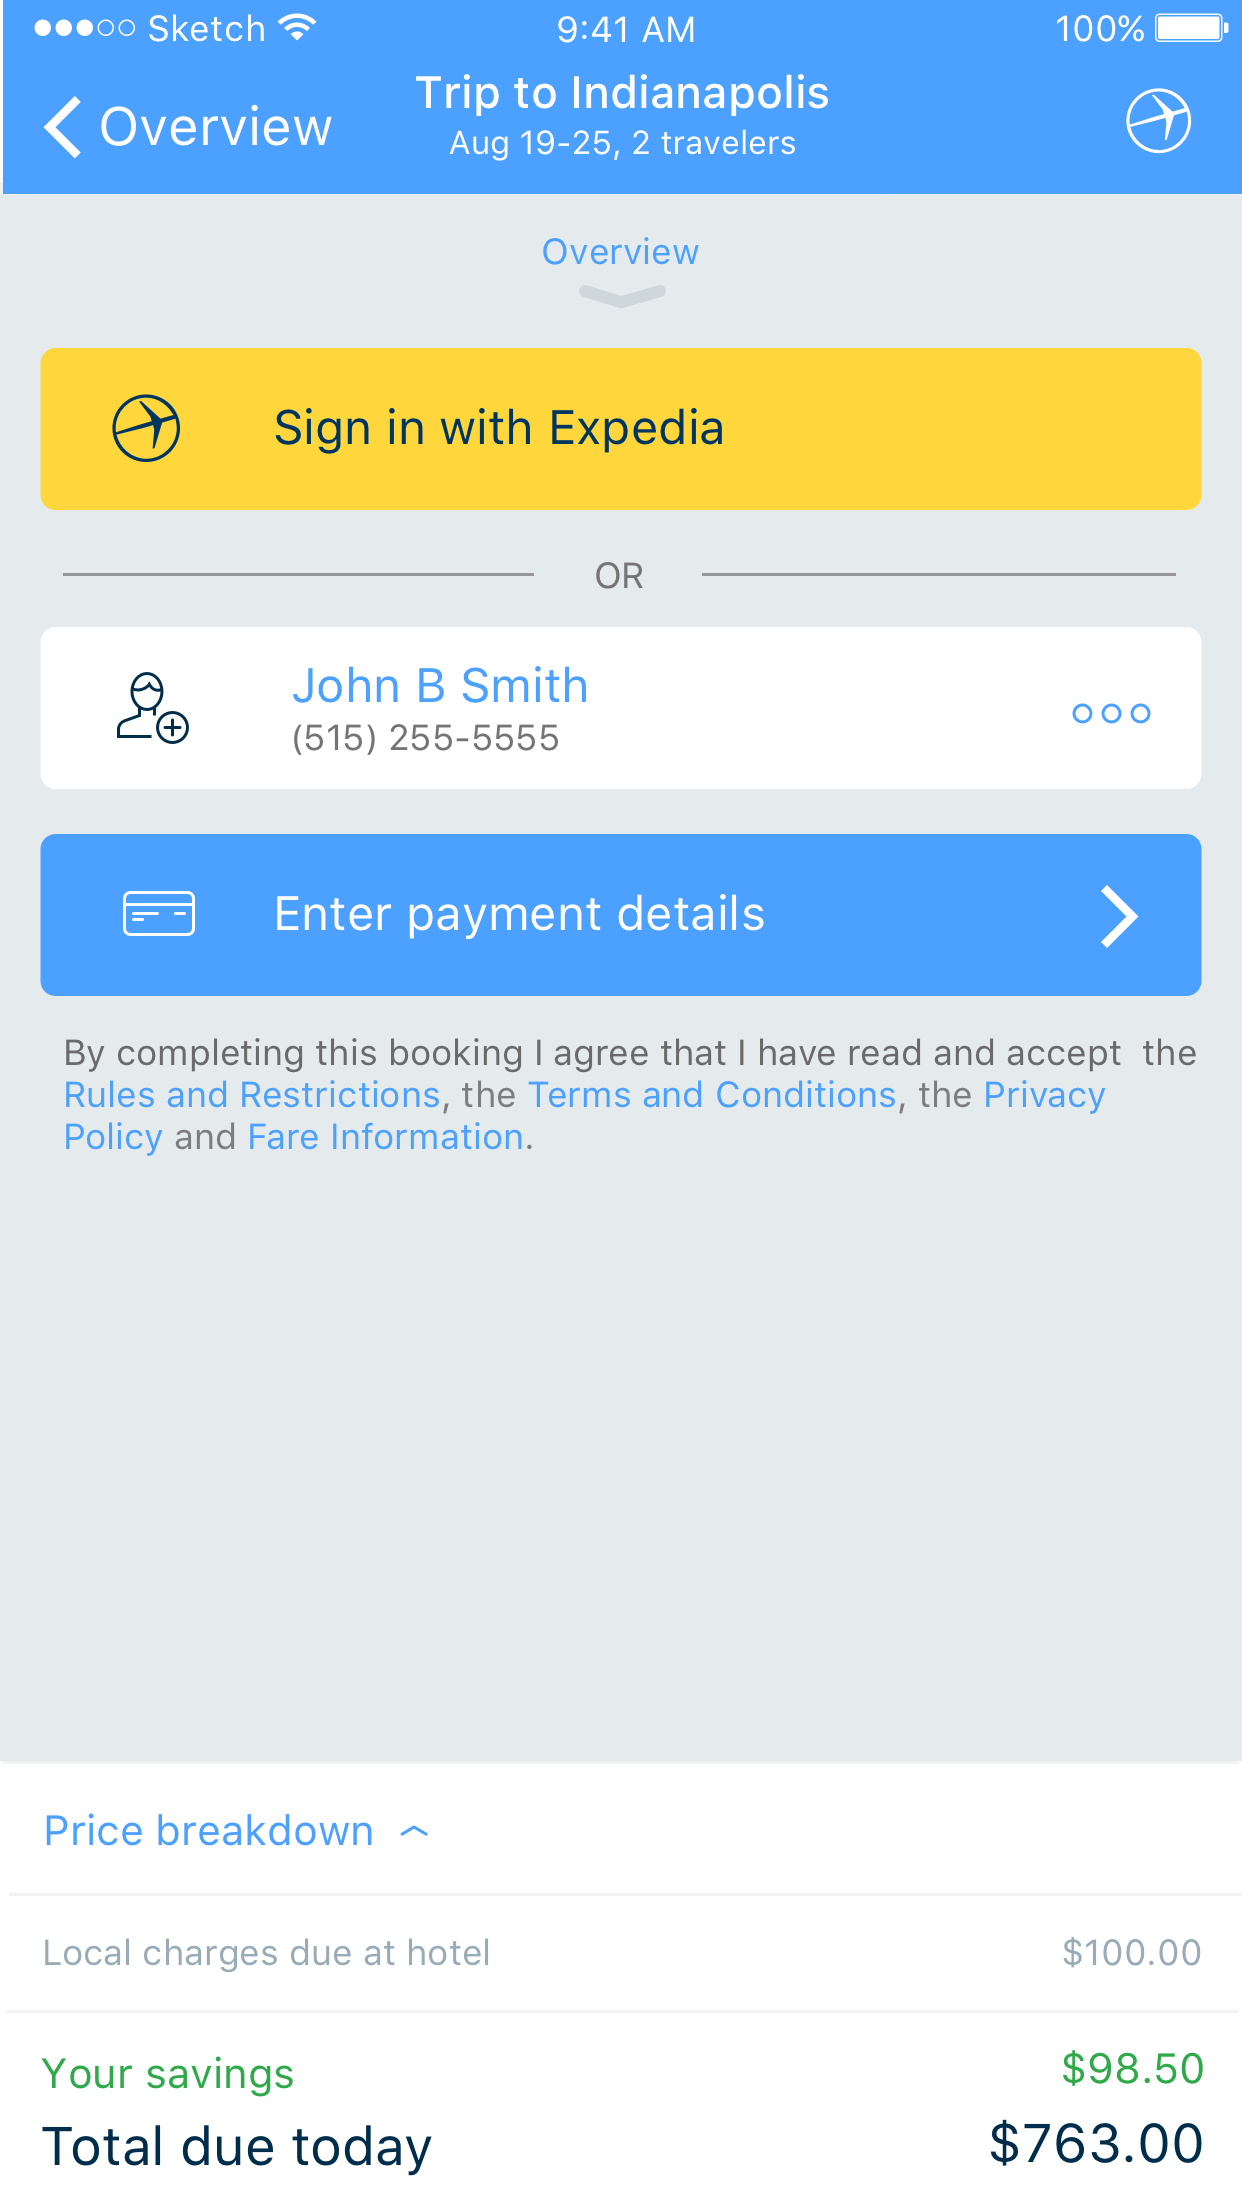 92 - Checkout Payment Details Highlighted Copy 2.png